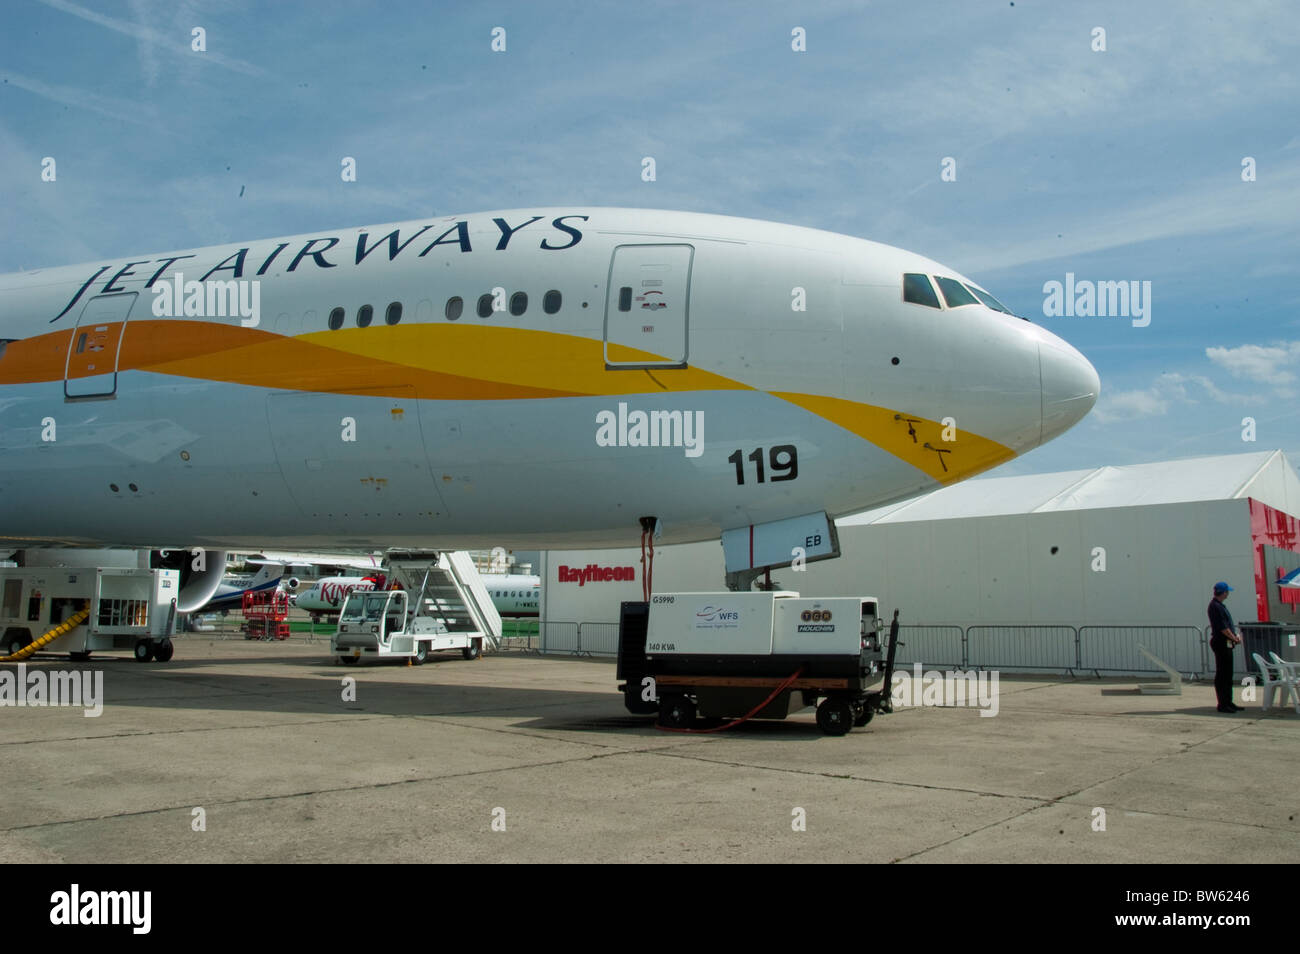 Paris, France,  Jet Airways, Aeroplanes on Display,  at the Bourget Airport, Tarmac - Stock Image